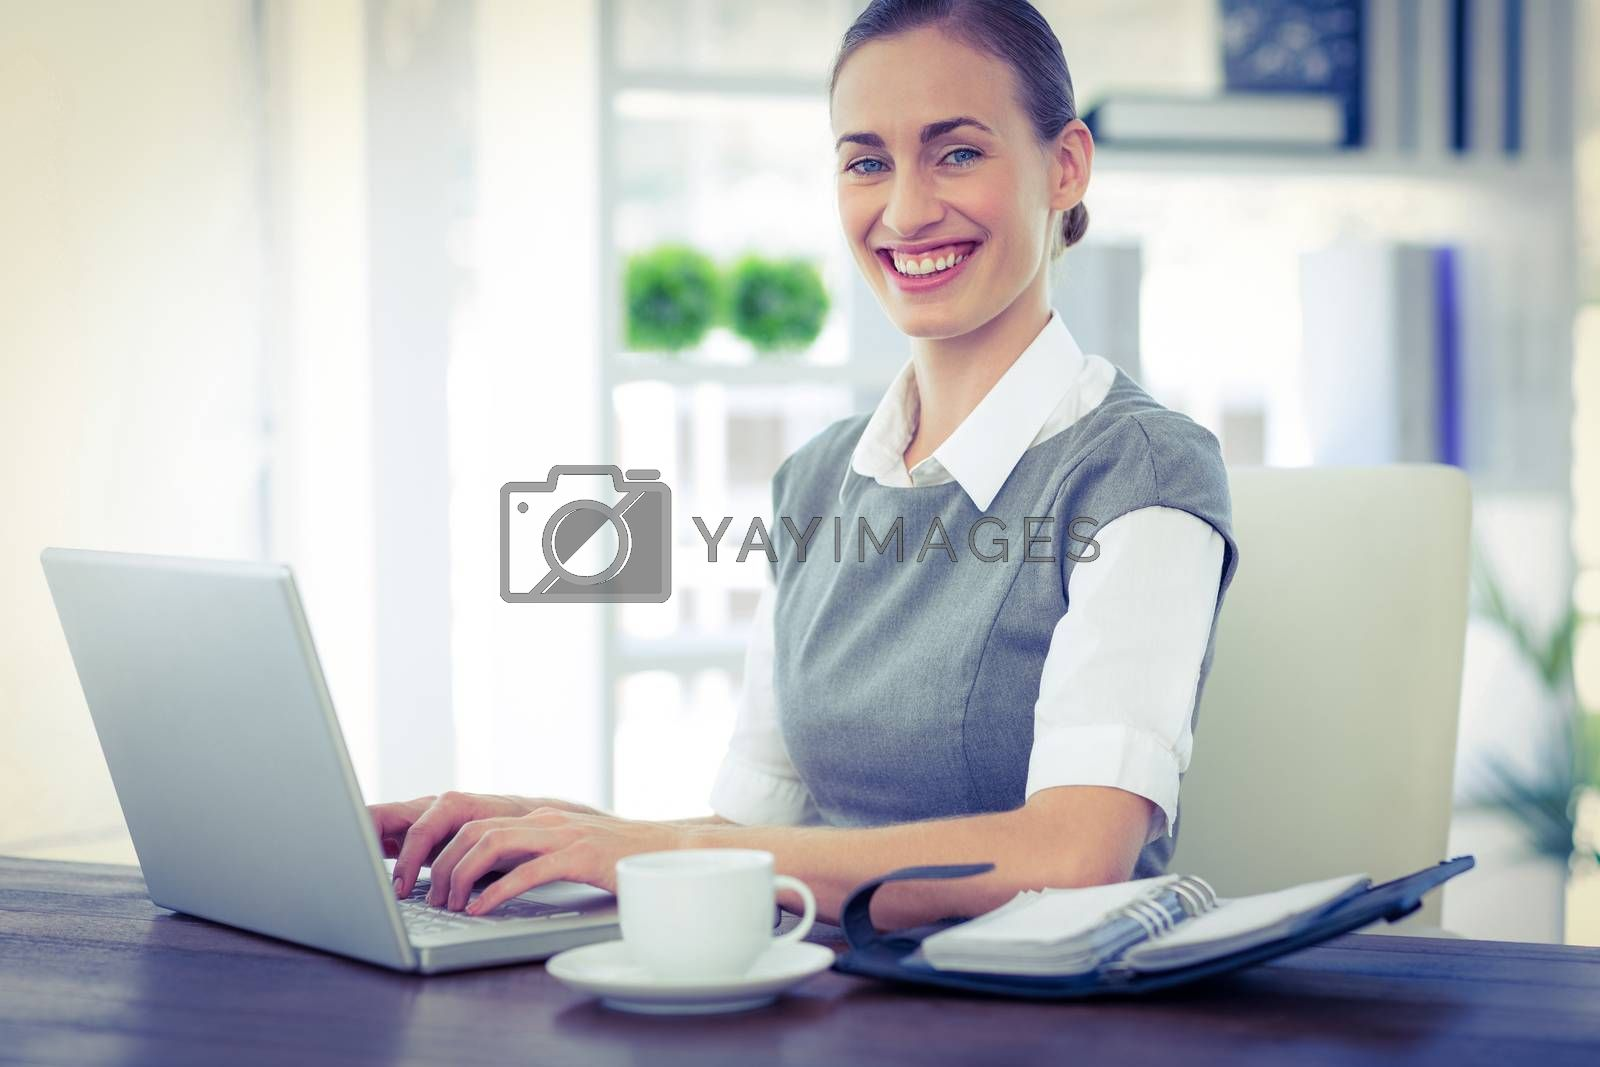 Royalty free image of Happy businesswoman working on laptop computer and looking at camera by Wavebreakmedia